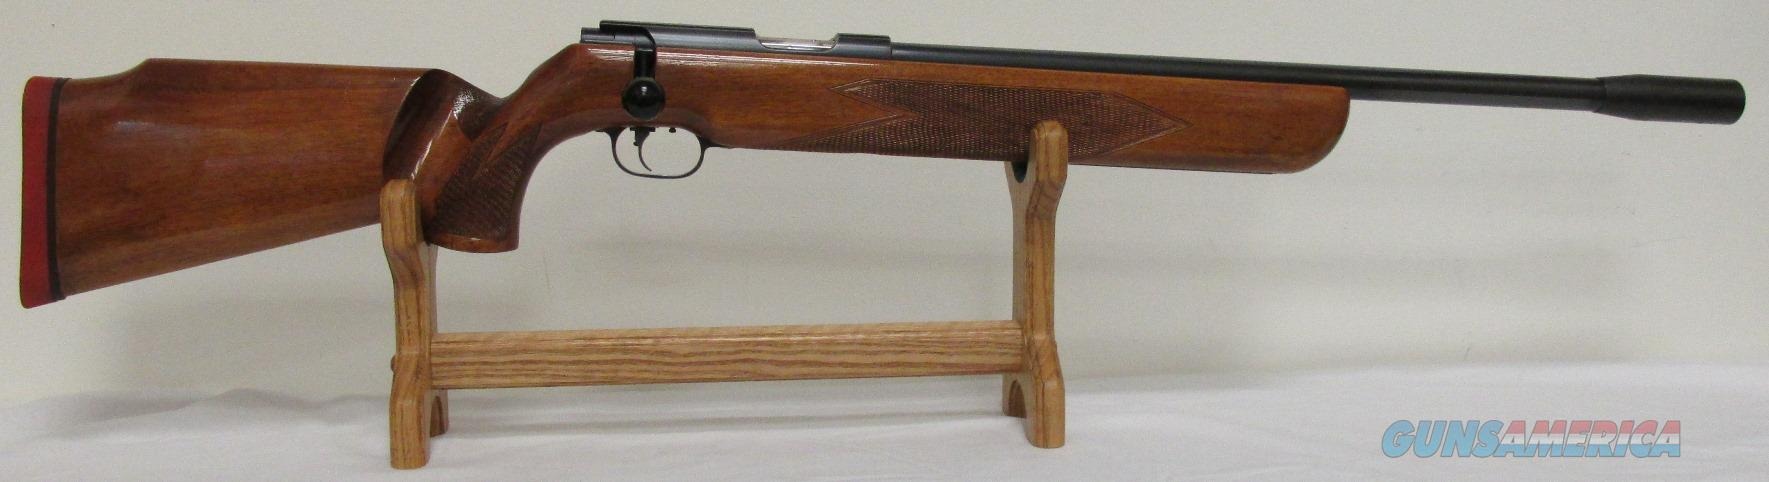 Walther 22LR Target Rifle with Barrel Weight (Vintage)  Guns > Rifles > Walther Rifles